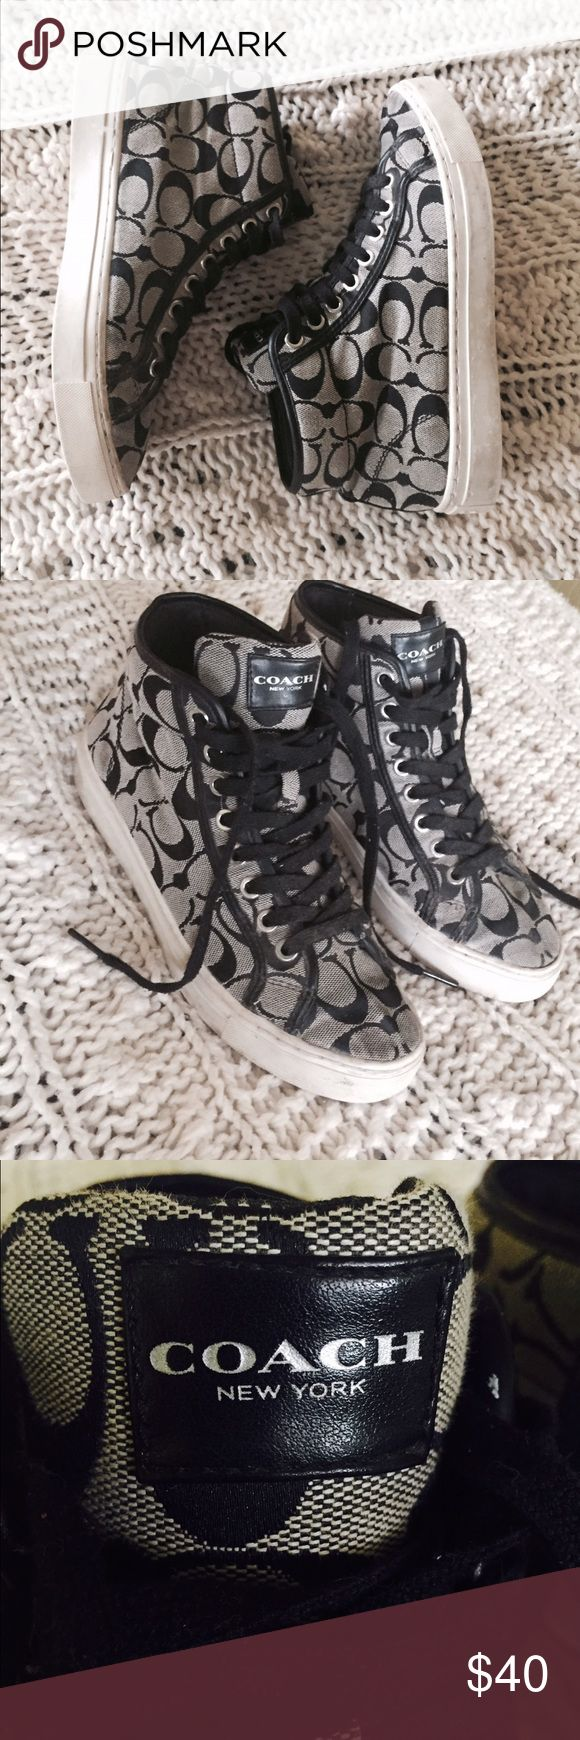 Classic Black Coach high top sneakers 💯 % authentic. Gently worn, no major stains. Just marks from normal wear, you you wanted to everything should come off with a magic eraser. Still super stylish shoes. Perfect for the coach girl! They are a size 8. I'm open to offers!! Coach Shoes Sneakers